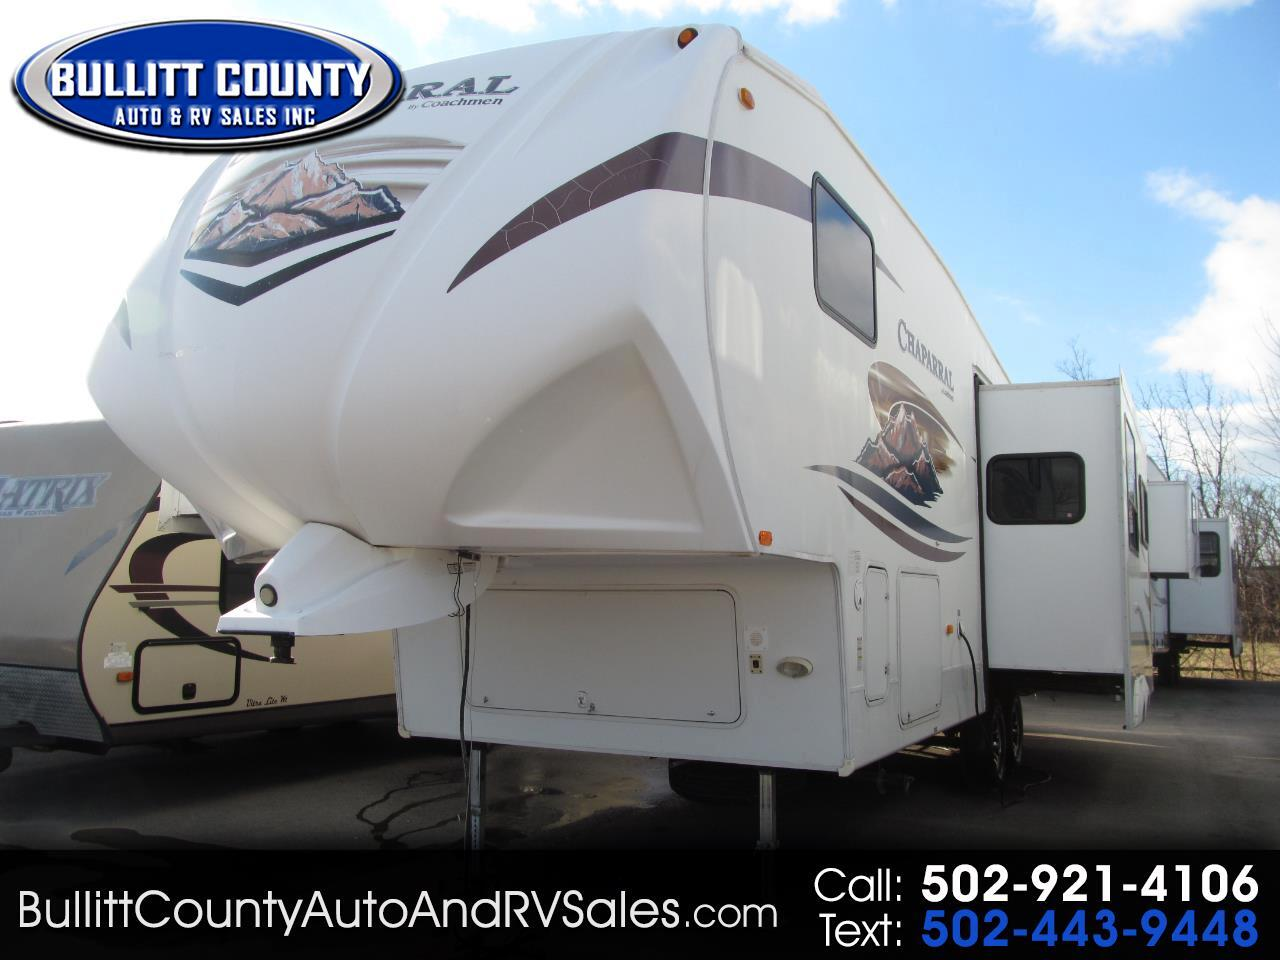 2009 Coachmen Chaparral 278 RLDS